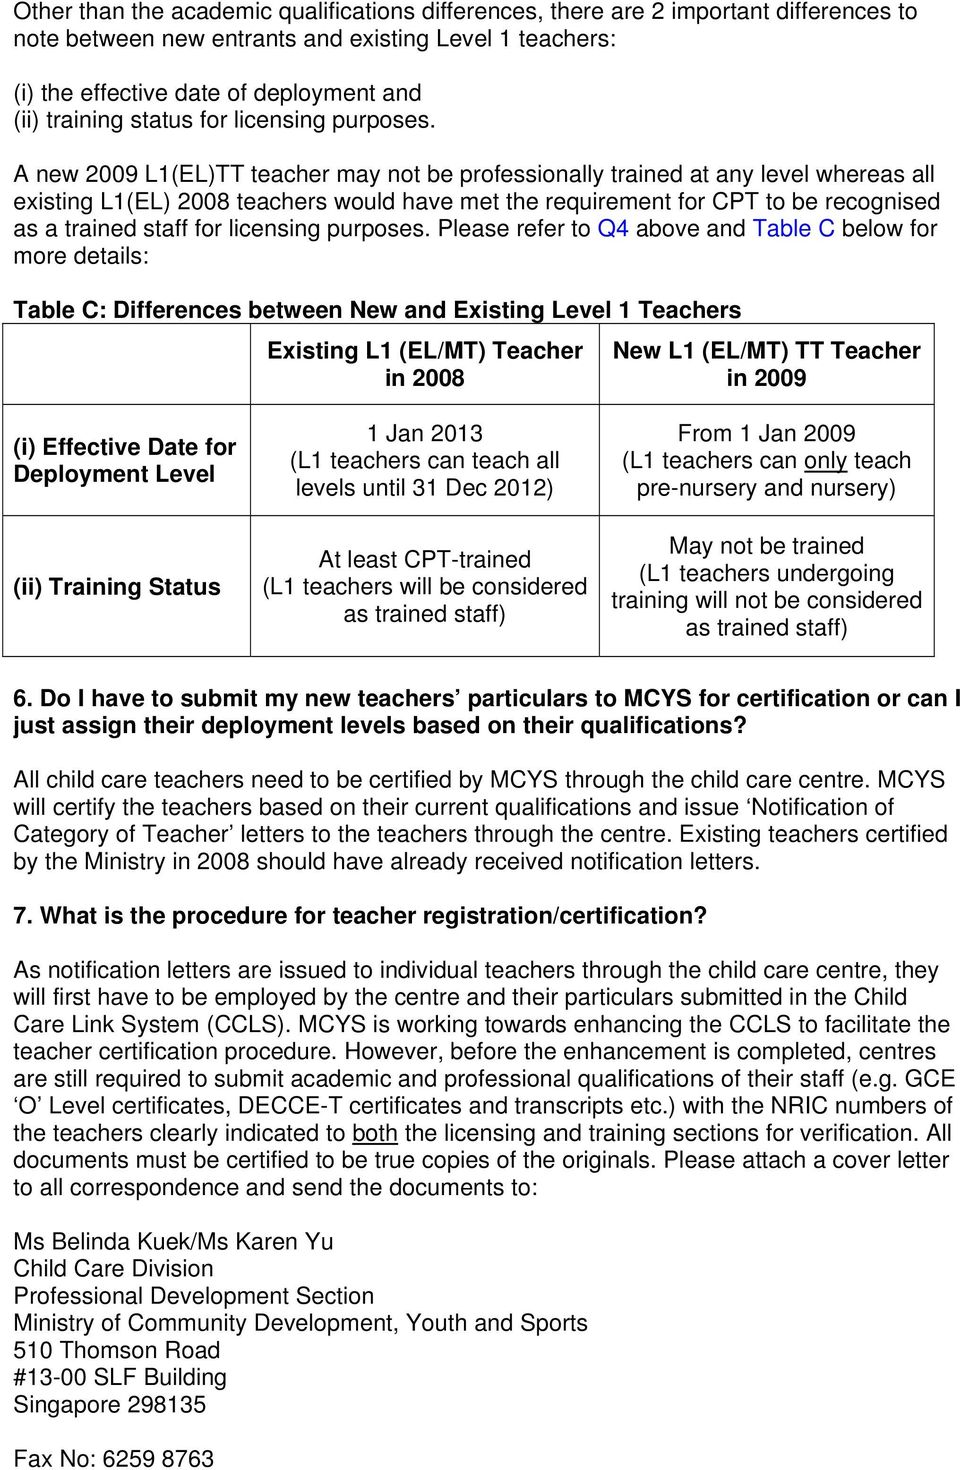 A new 2009 L1(EL)TT teacher may not be professionally trained at any level whereas all existing L1(EL) 2008 teachers would have met the requirement for CPT to be recognised as a trained staff for